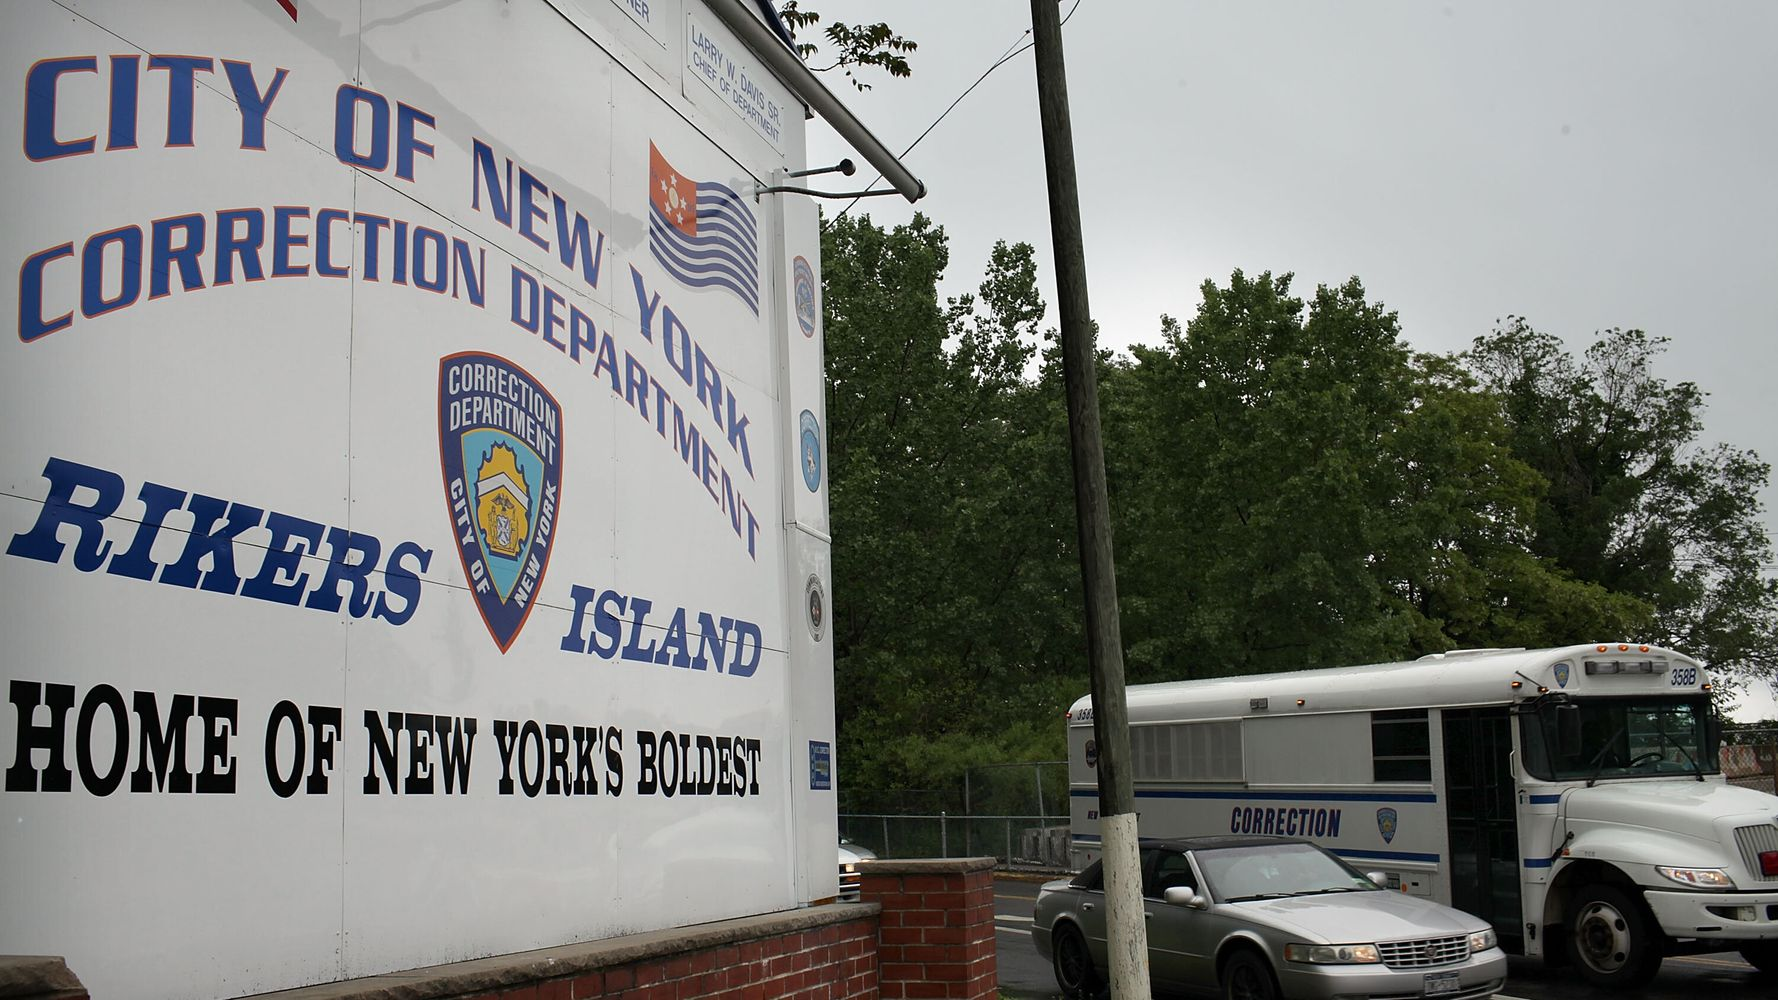 Prisoners At Rikers Say It's Like A 'Death Sentence' As Coronavirus Spreads